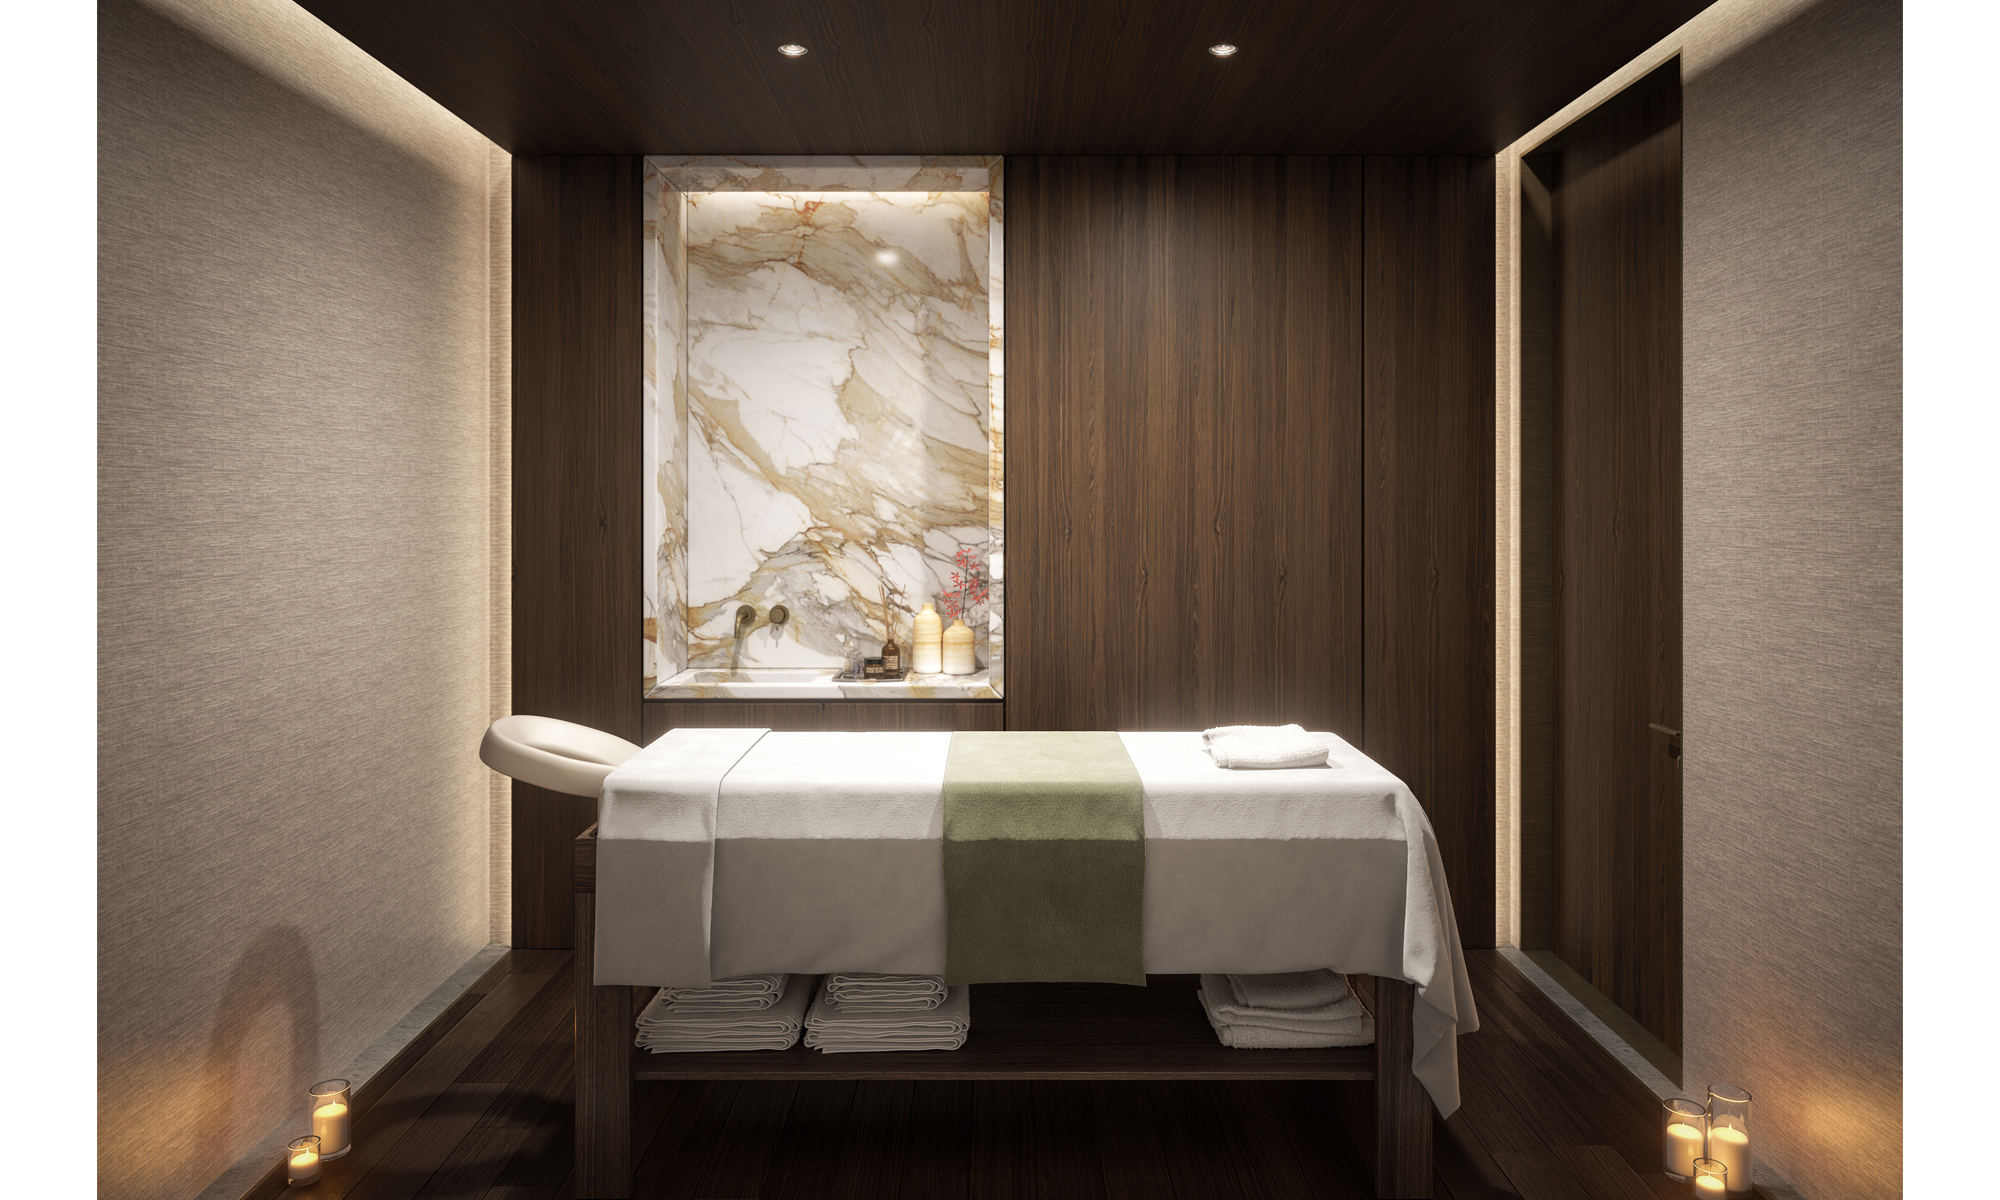 Artist's impression of a spa treatment room.